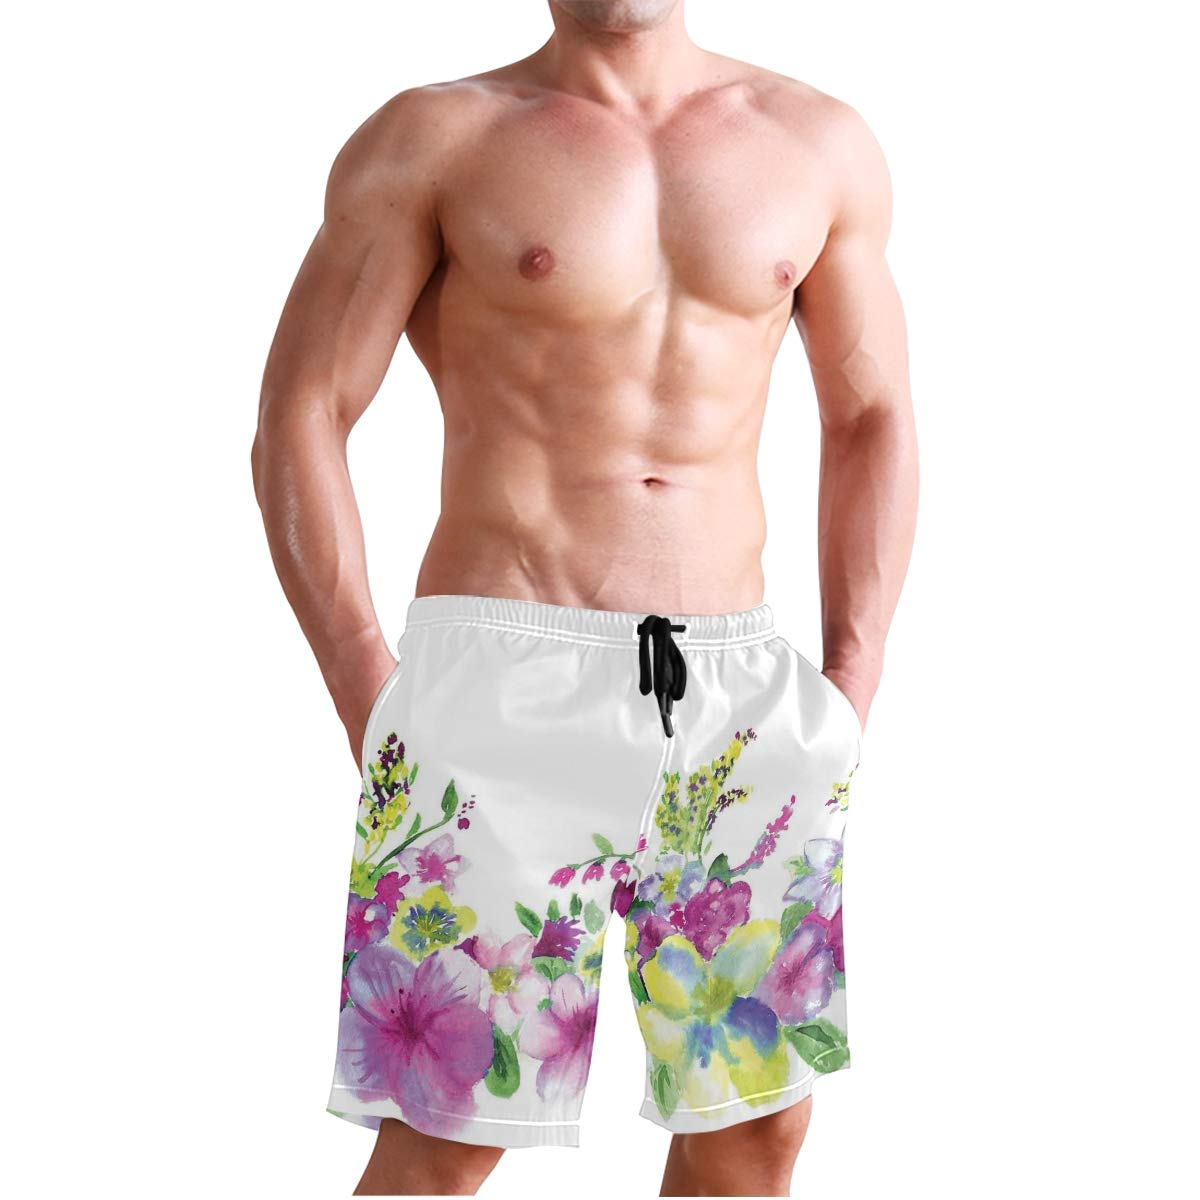 Hungry Animals Grass Looking at Spider Insect World Illustration Worm Ladyb Casual Swim Trunks All